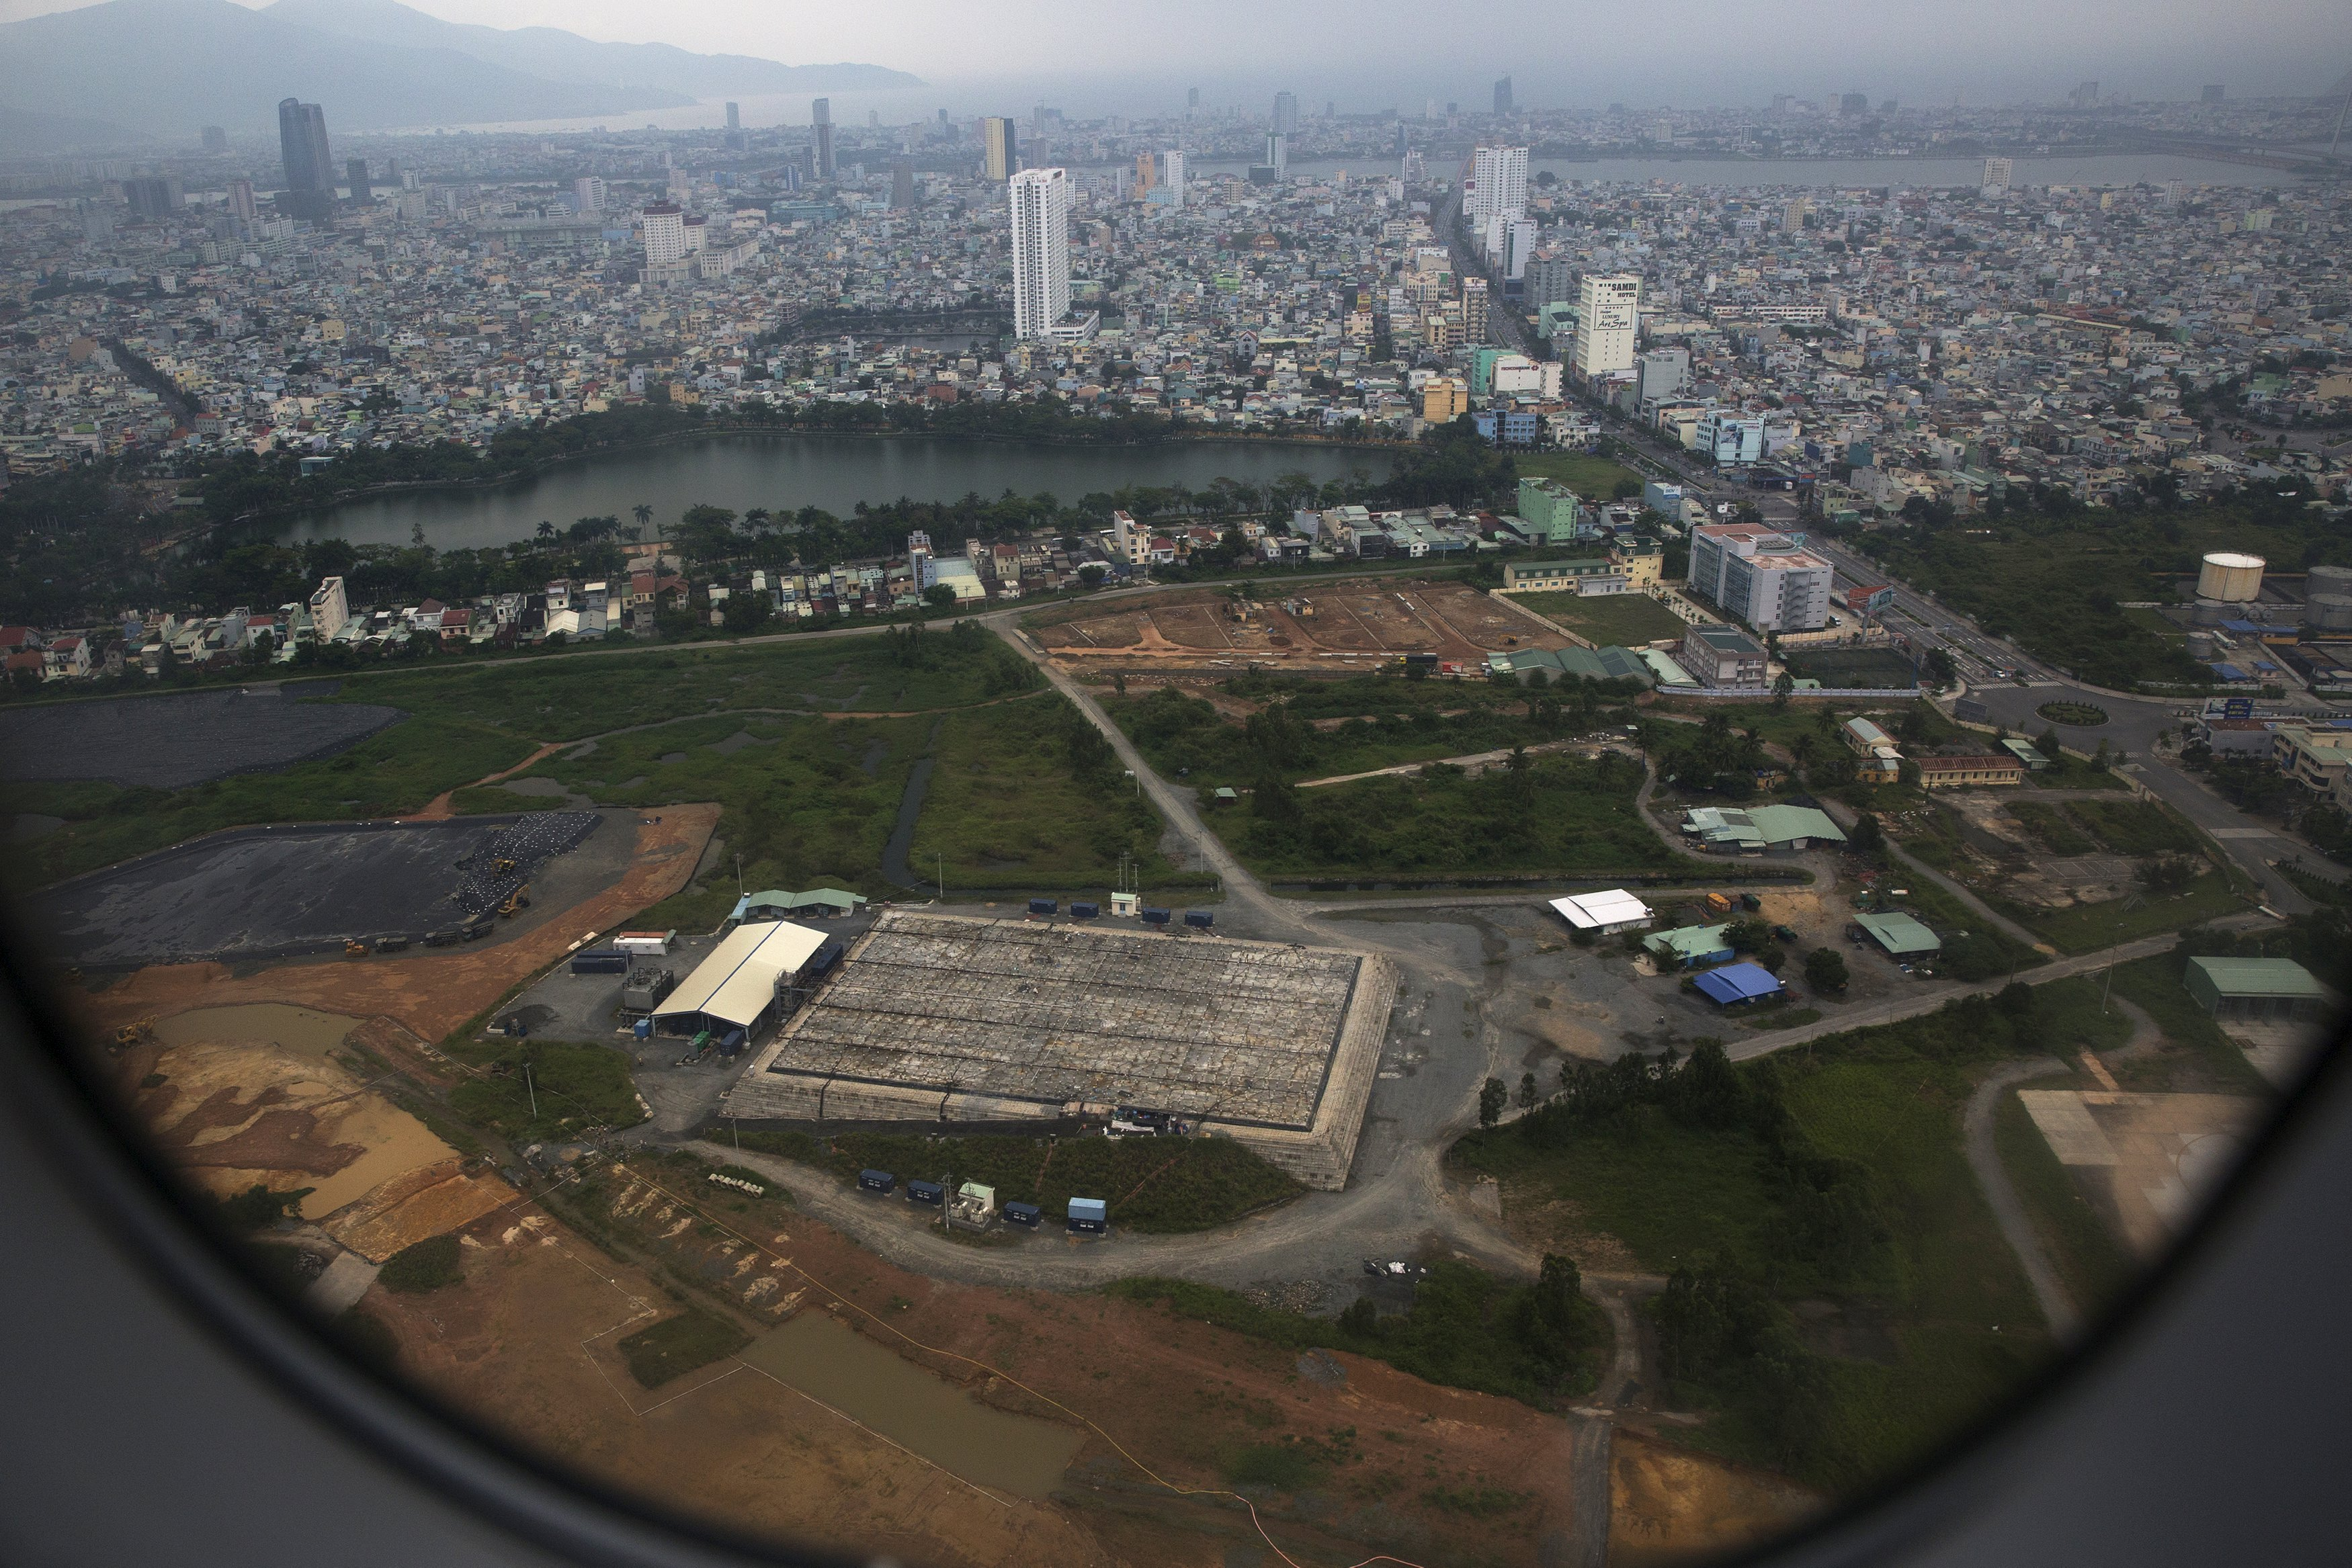 The cleaning operation of the area that was used for storing Agent Orange is seen from a plane taking off from Danang international airport April 13, 2015. Agent Orange was stored at Danang airbase and sprayed from U.S. warplanes to expose Vietnamese troops from the North and destroy their supplies, in jungles along the border with Laos. Since 2012, both the U.S. and Vietnam have been conducting a clean-up operation at the site.